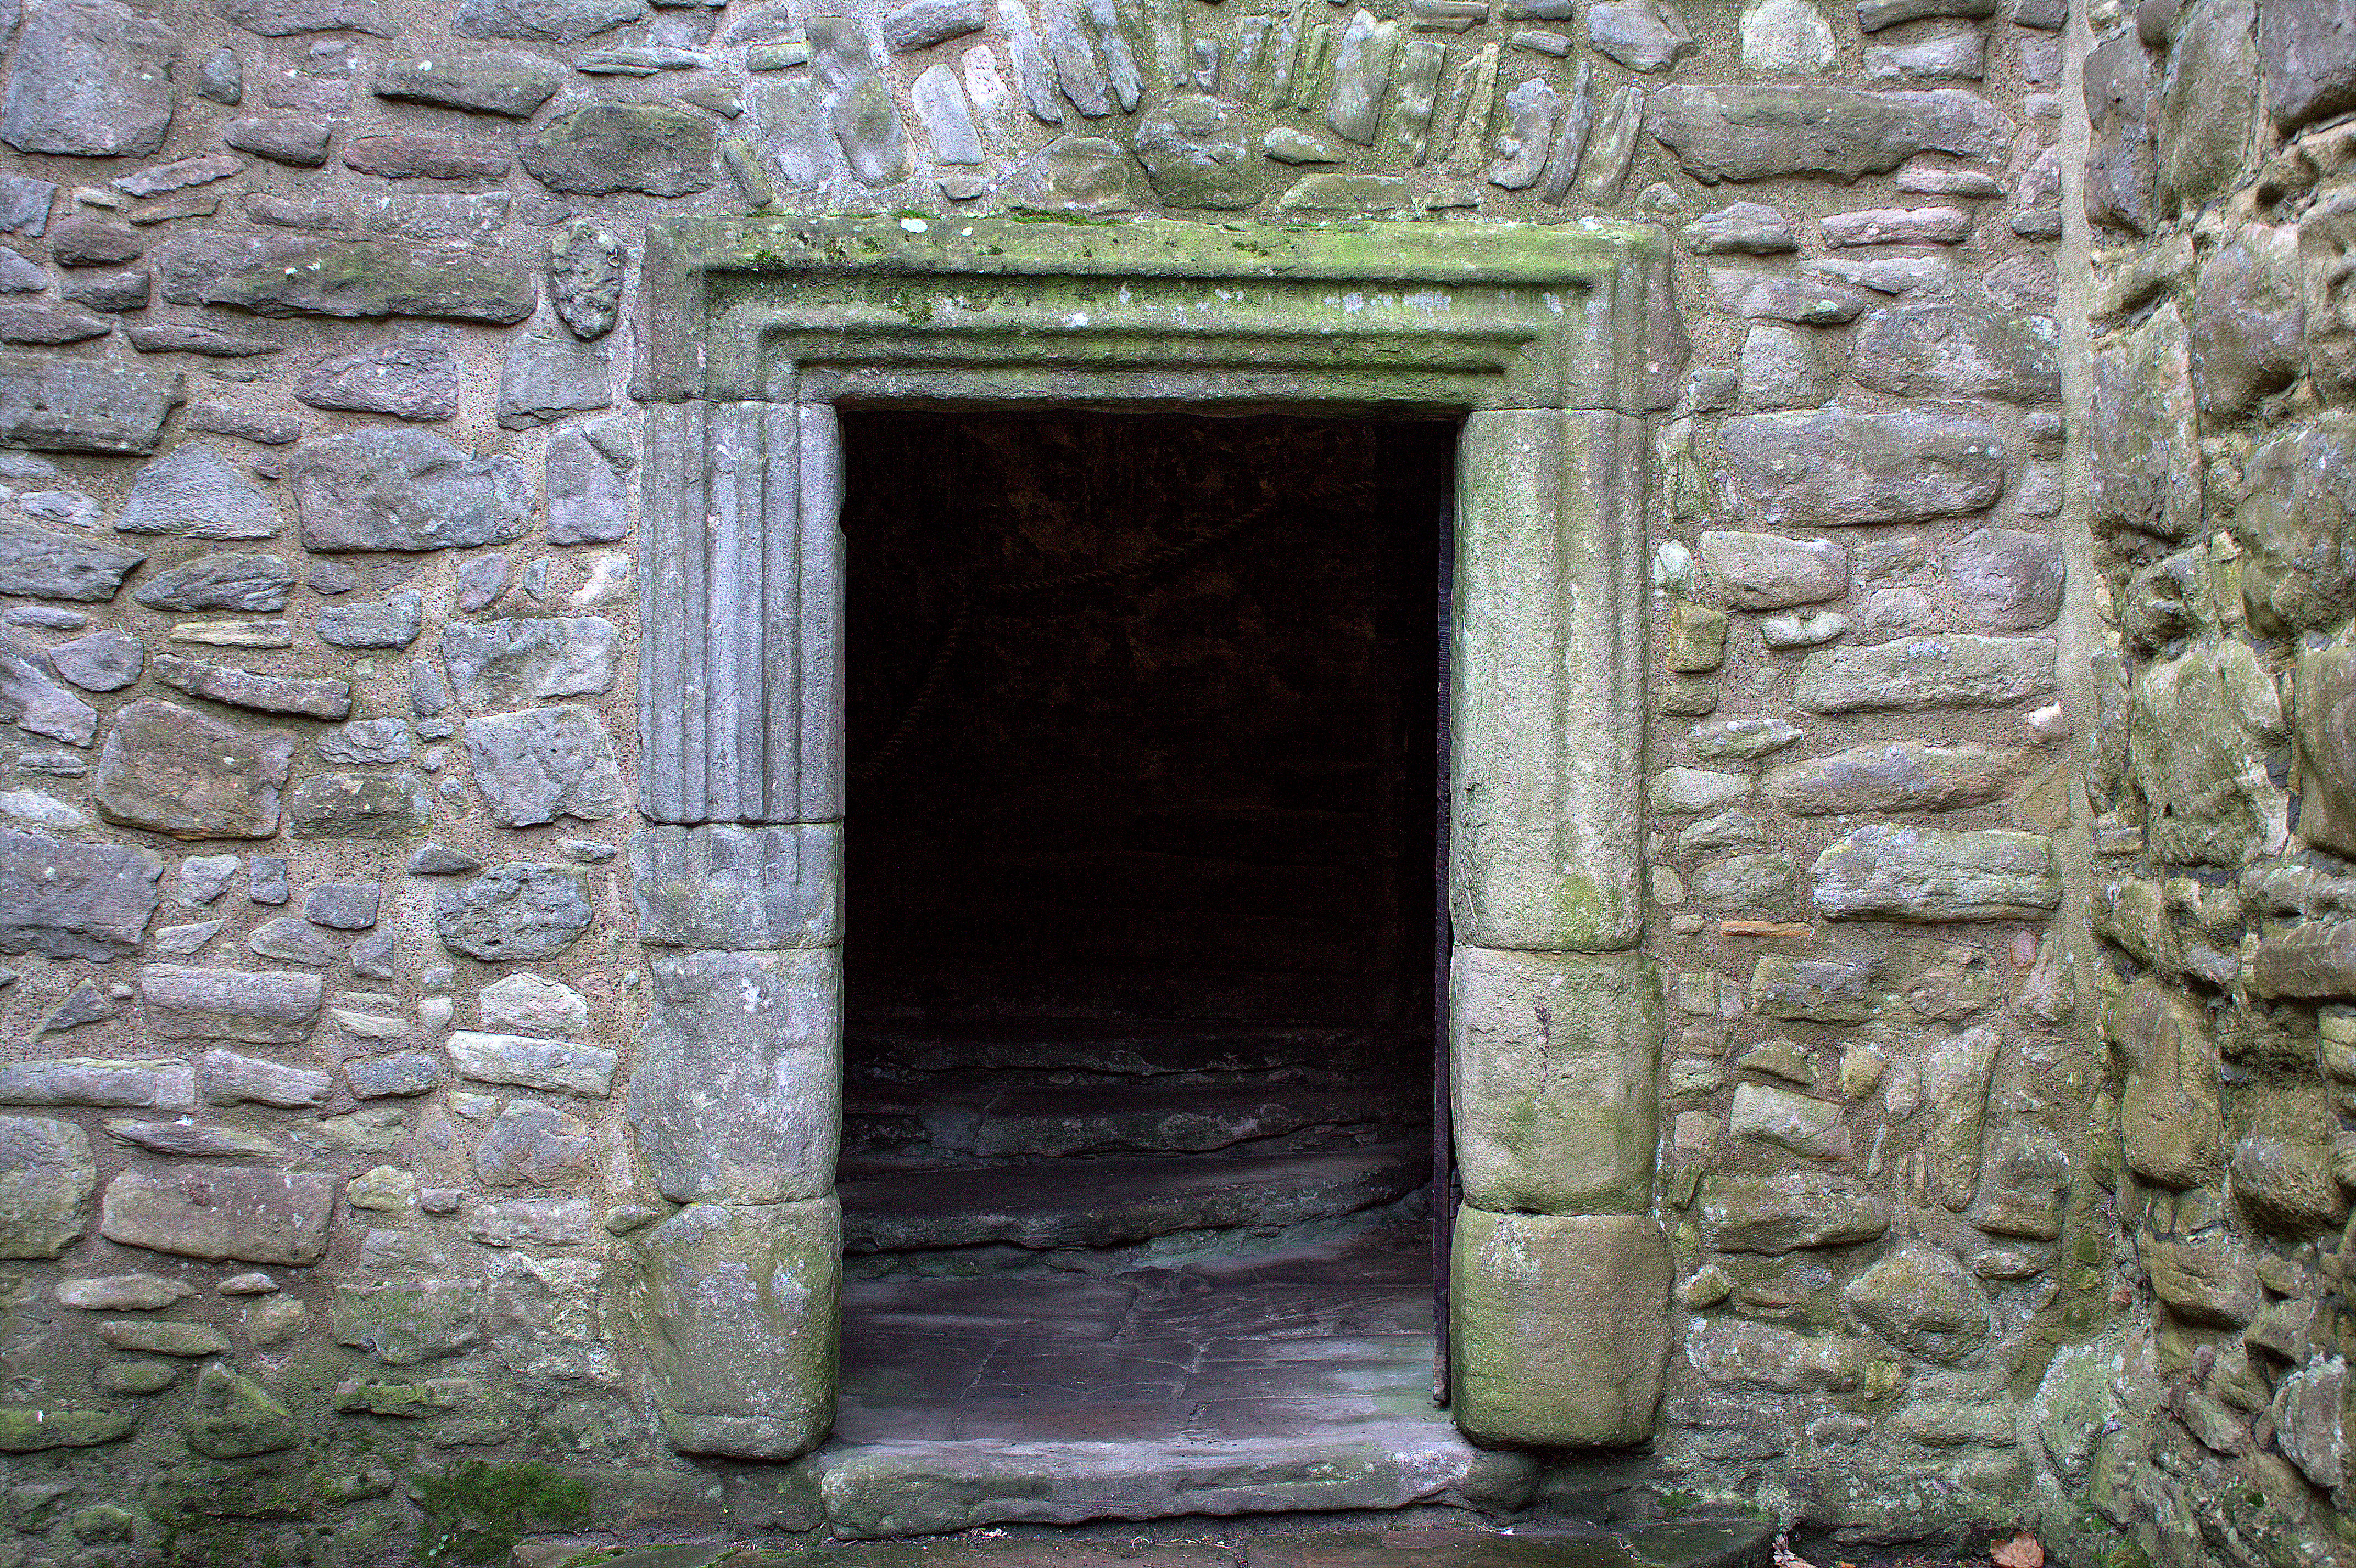 37. Craigmillar Castle, Edinburgh, Scotland